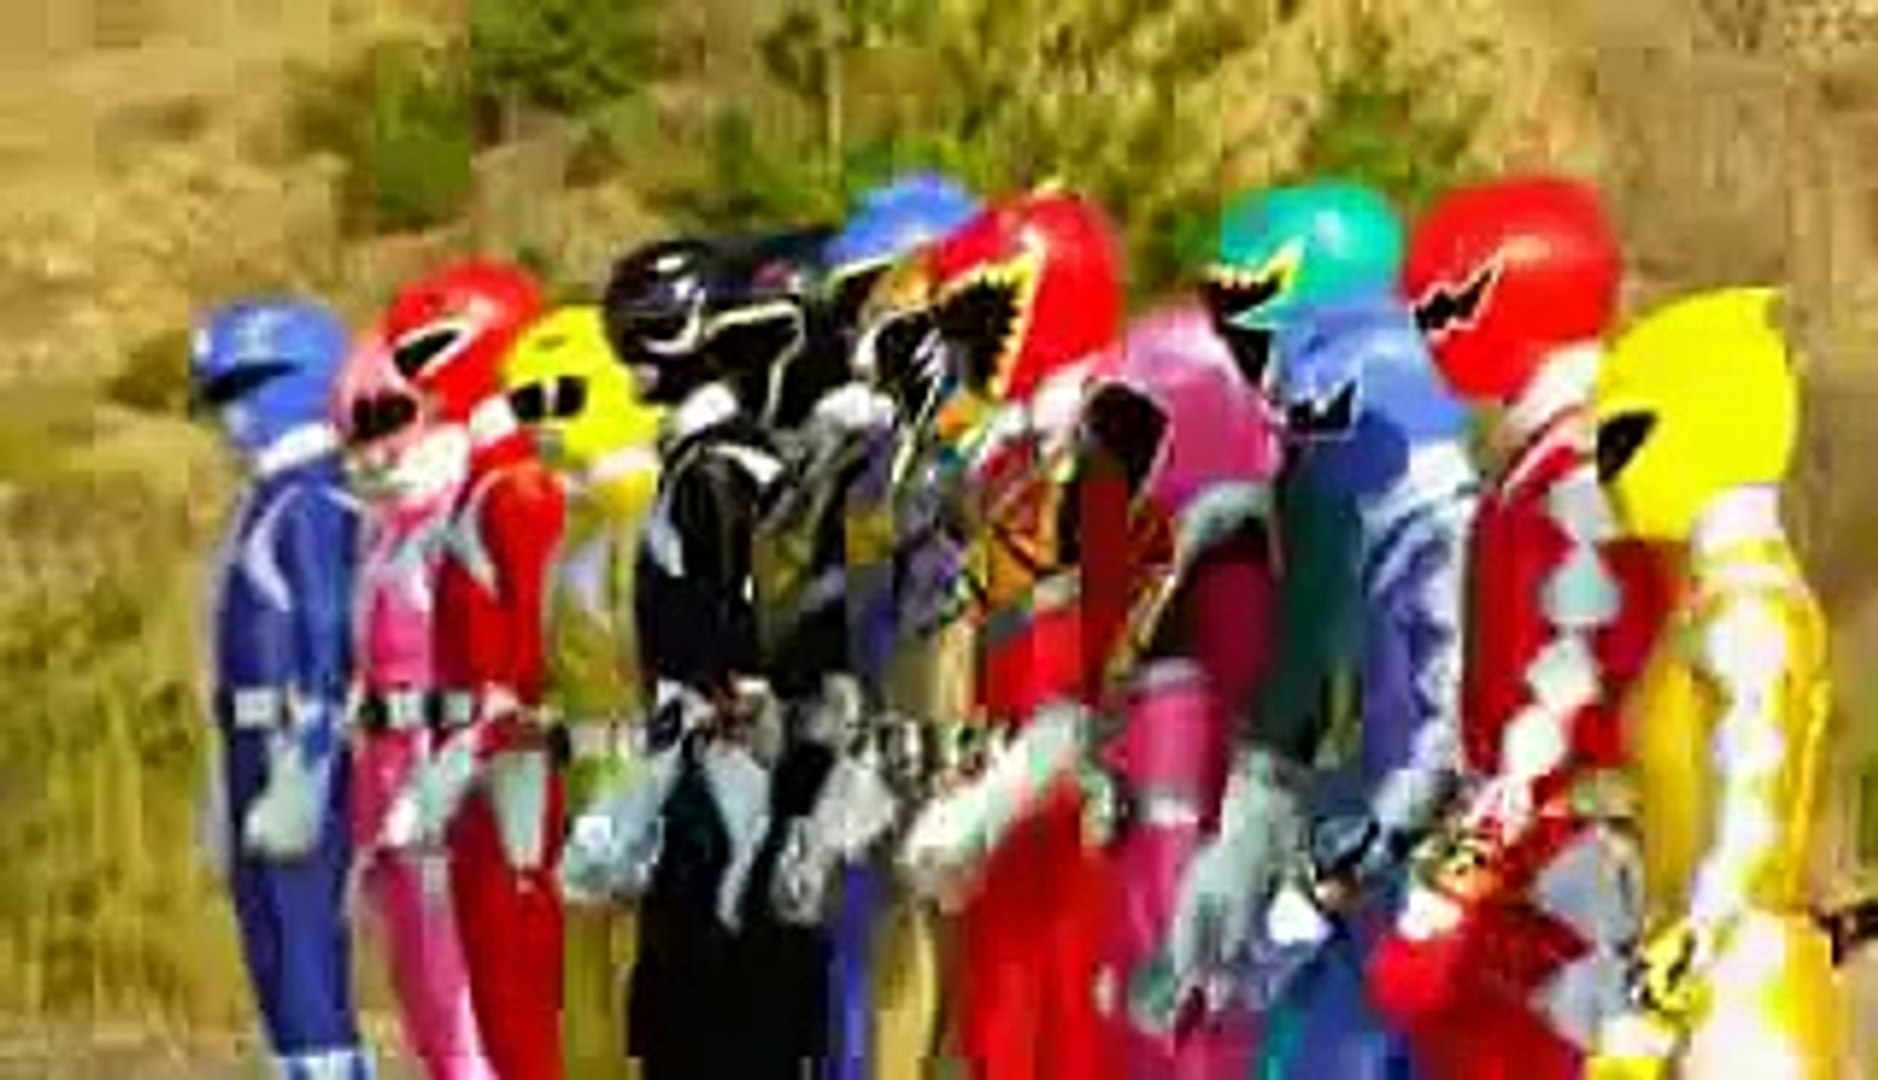 Zyuranger, Abaranger and Kyoryuger Henshin and Roll Call